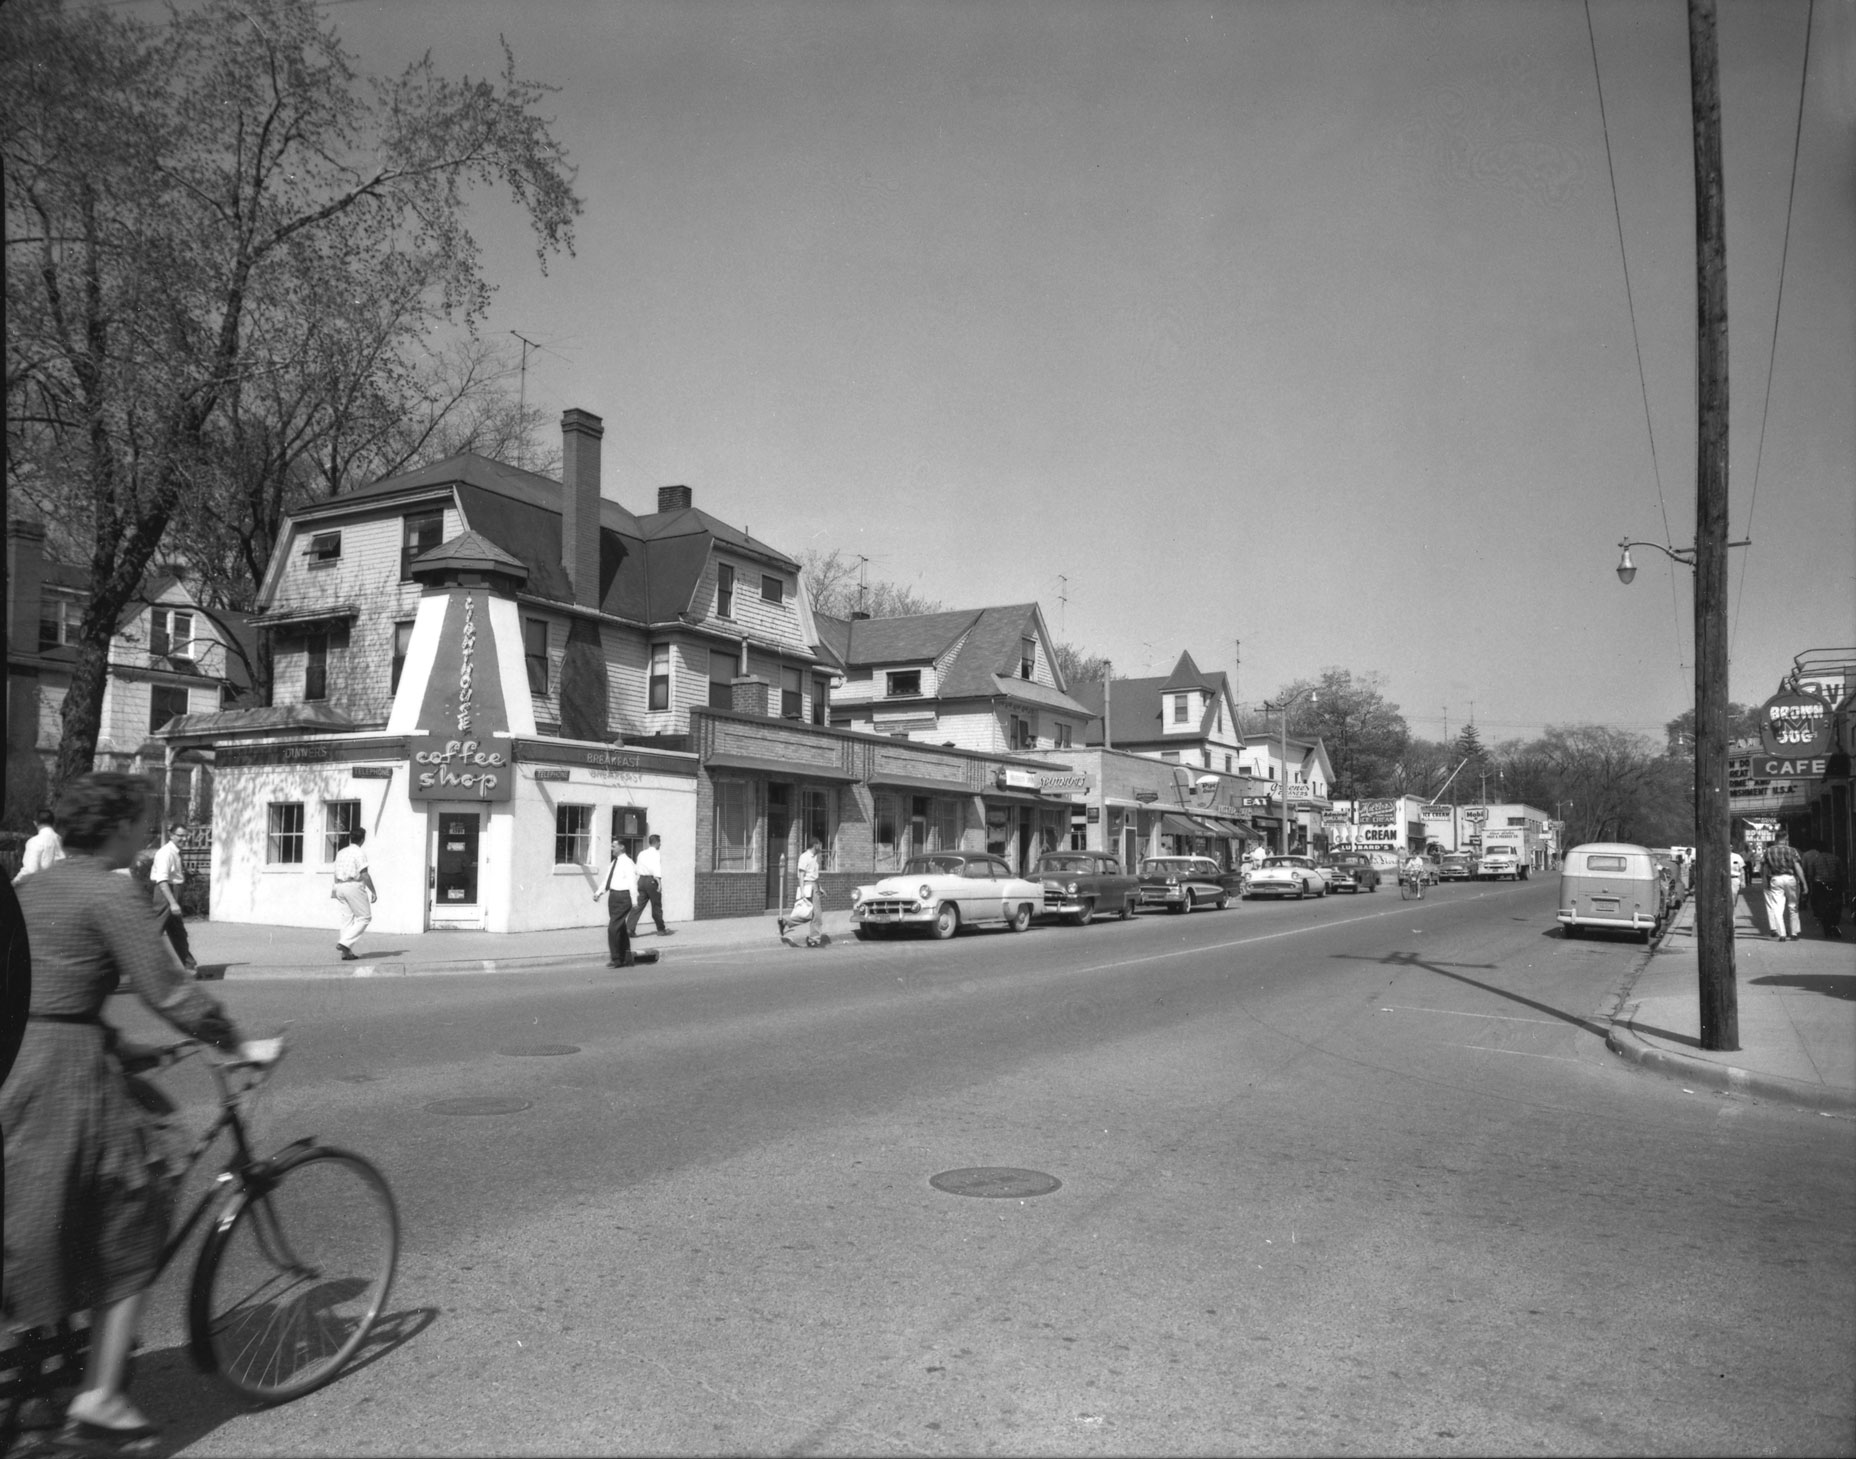 South University looking northeast from Church Street, ca. 1957 image